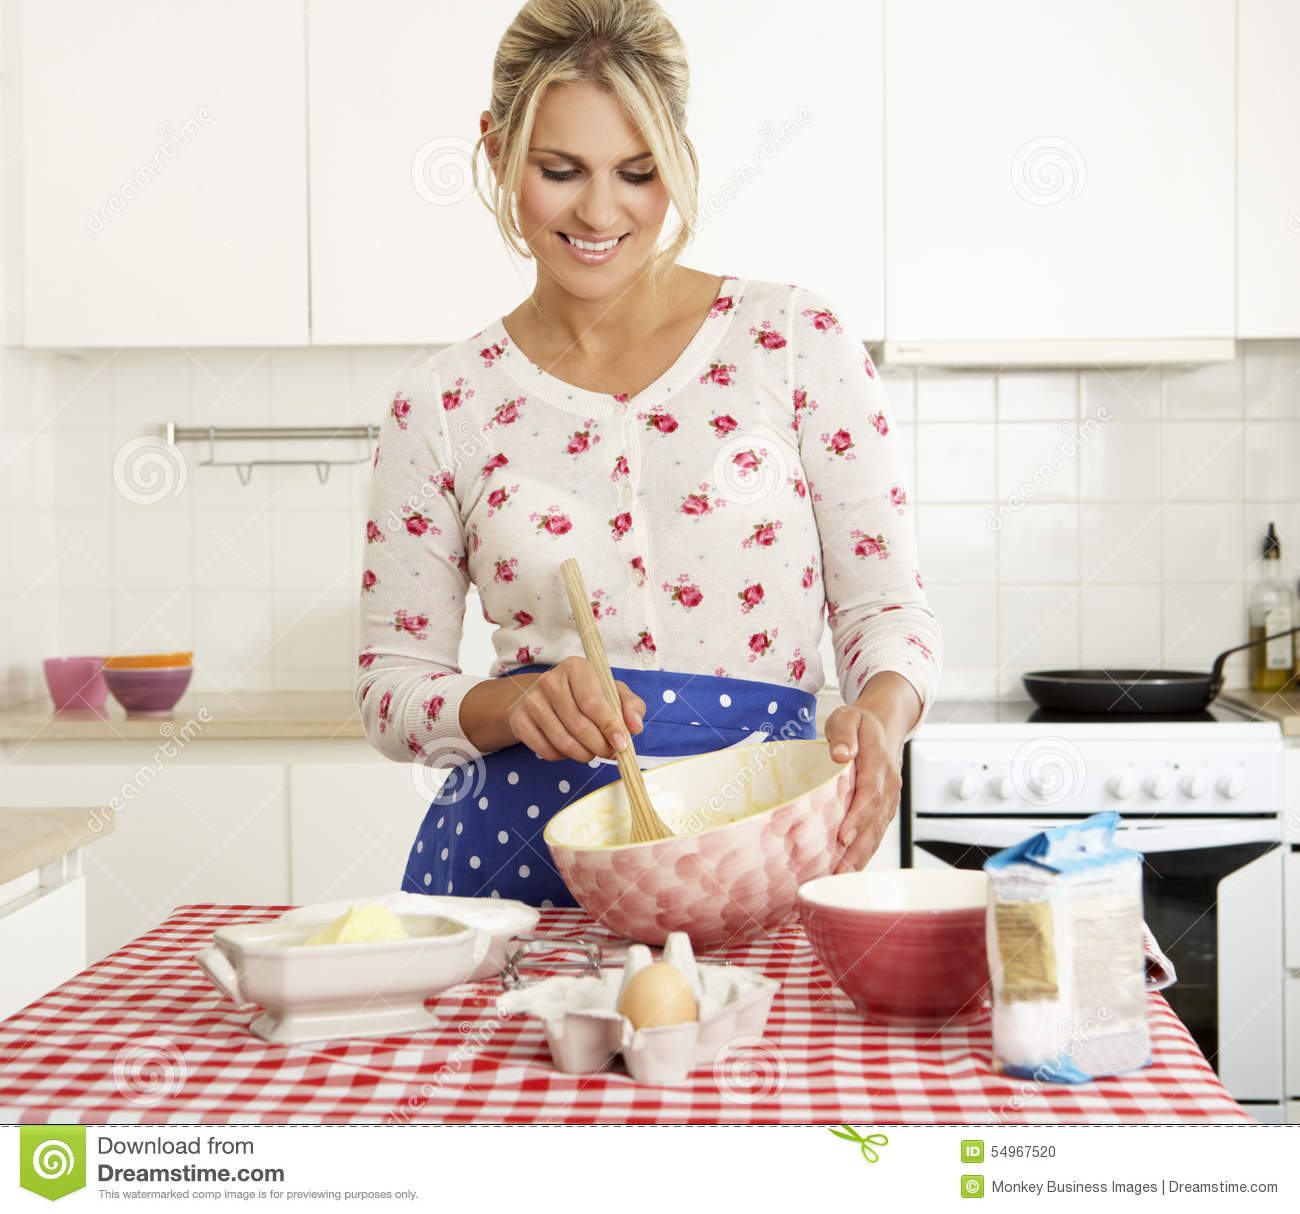 Women Kitchen: Woman Baking In Kitchen Stock Photo. Image Of Butter